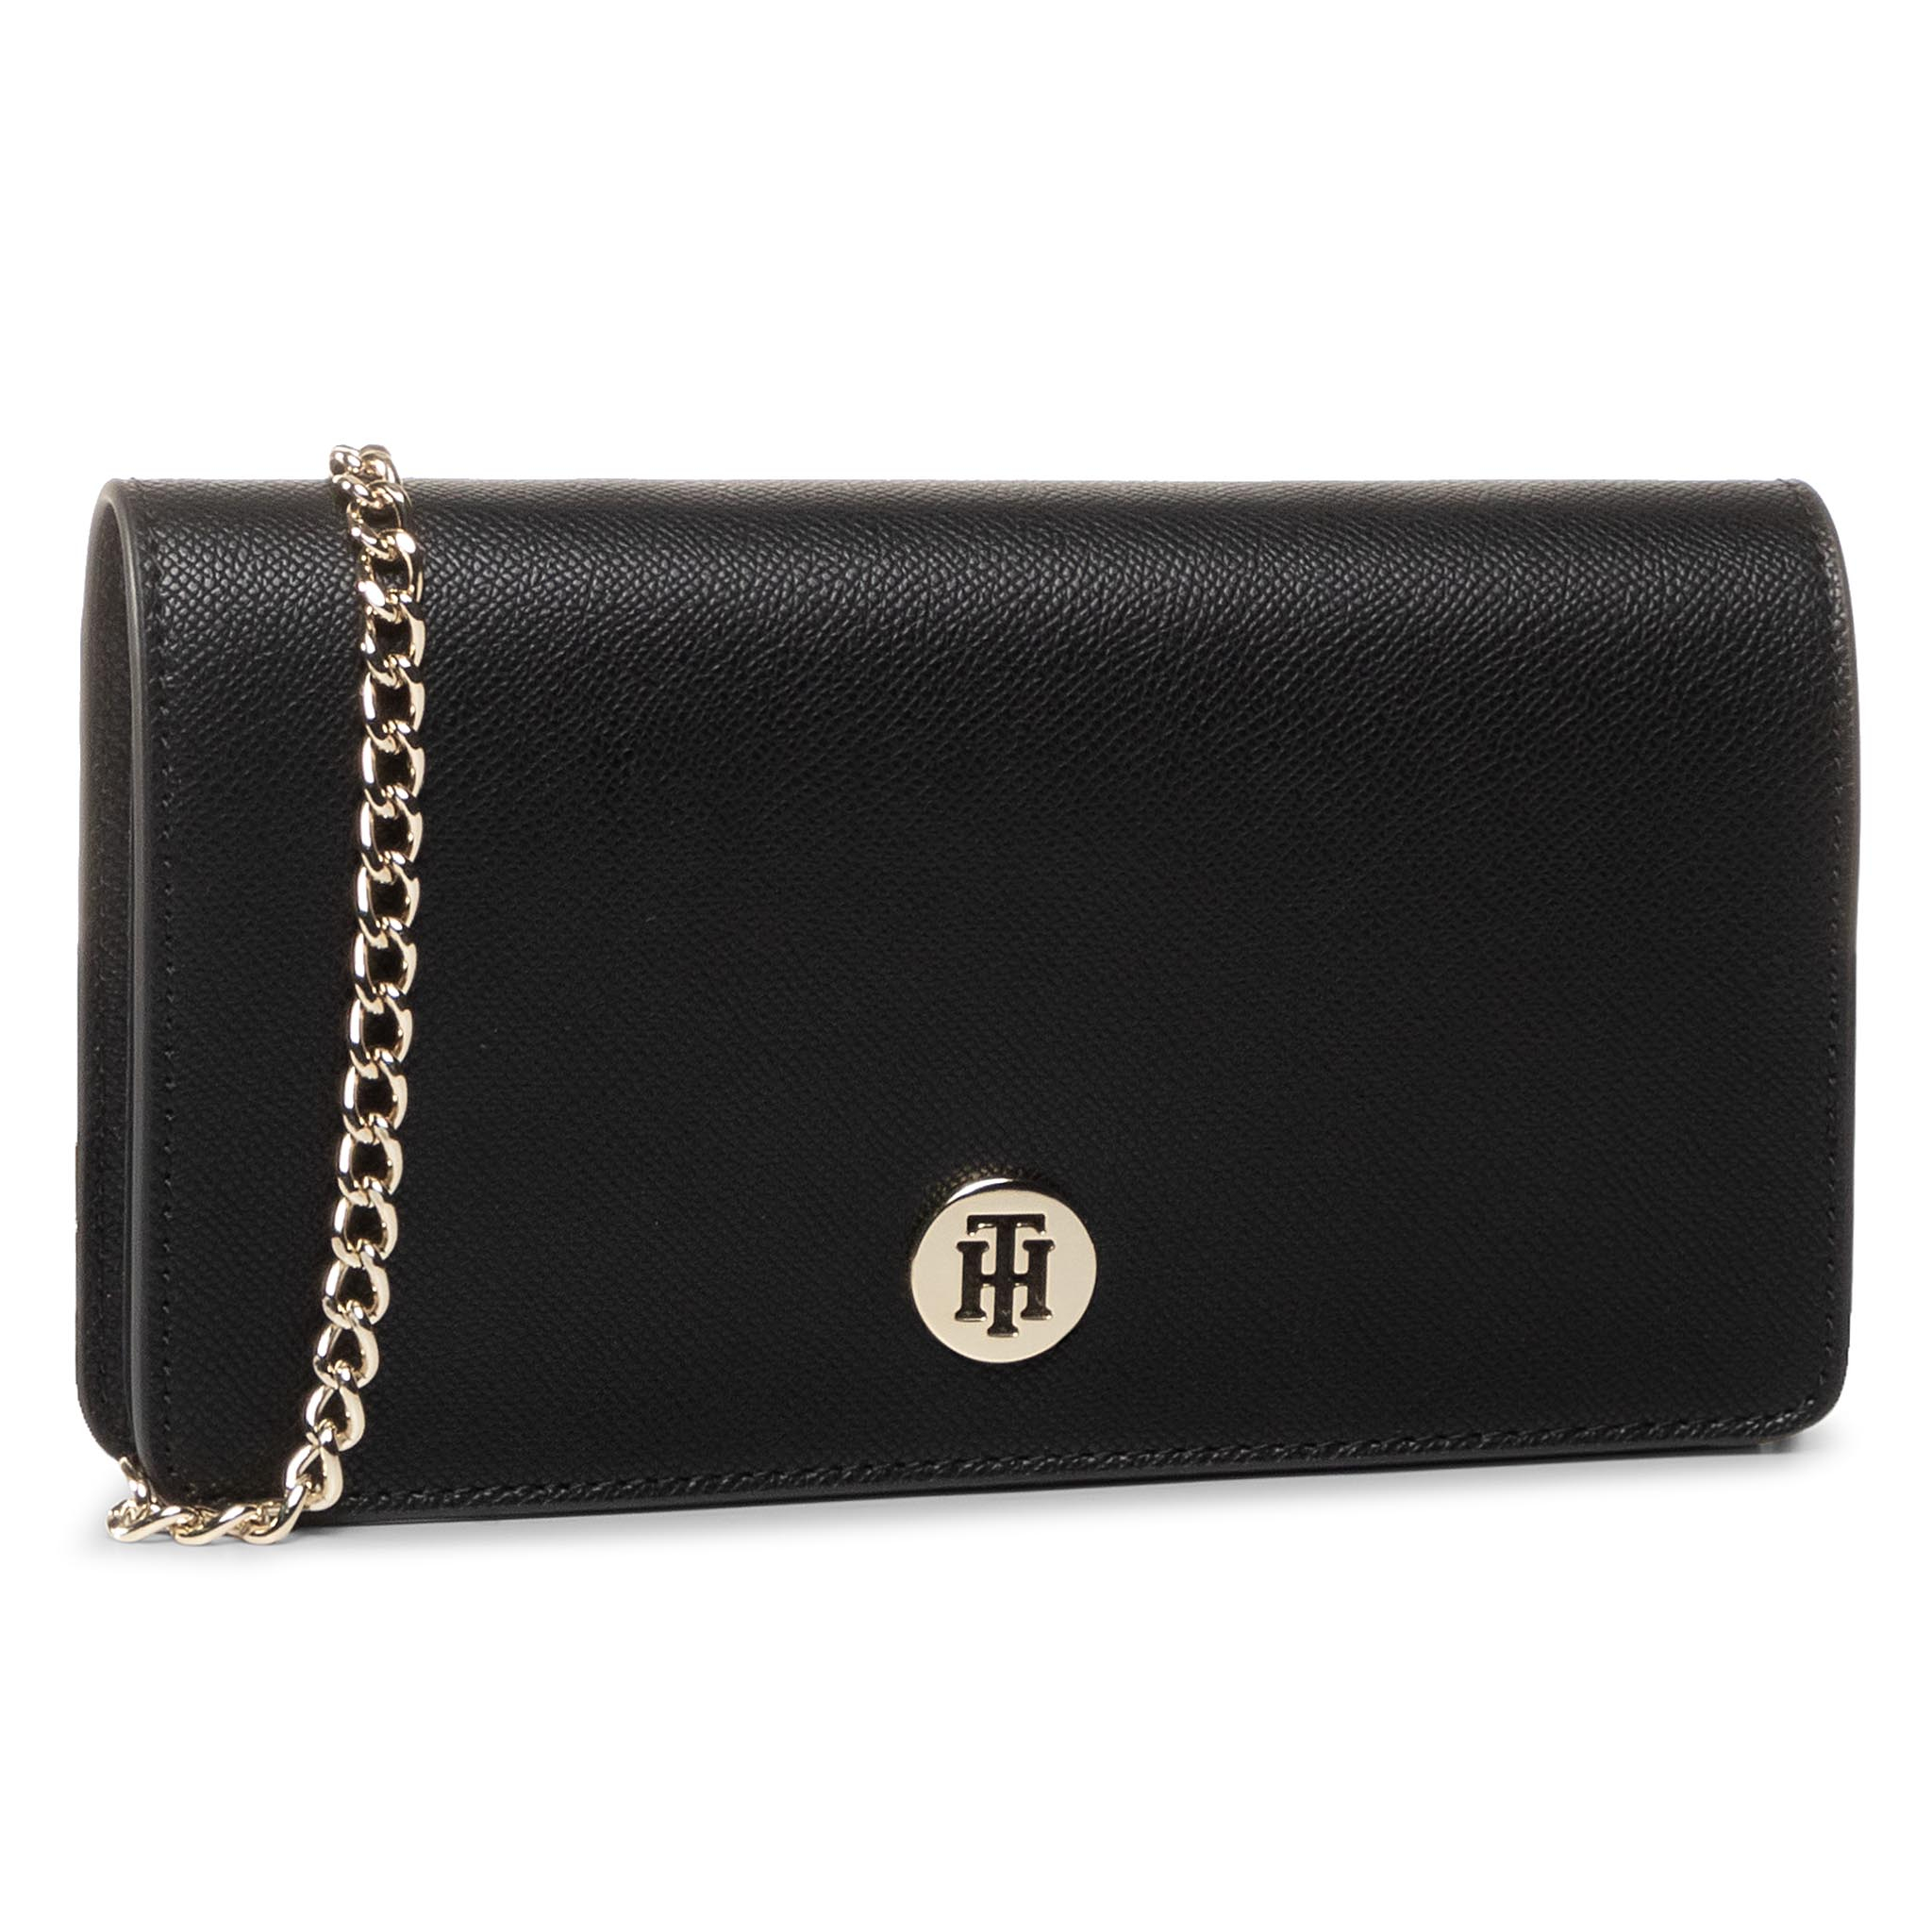 Geantă TOMMY HILFIGER - Honey Mini Crossover AW0AW07938 BDS